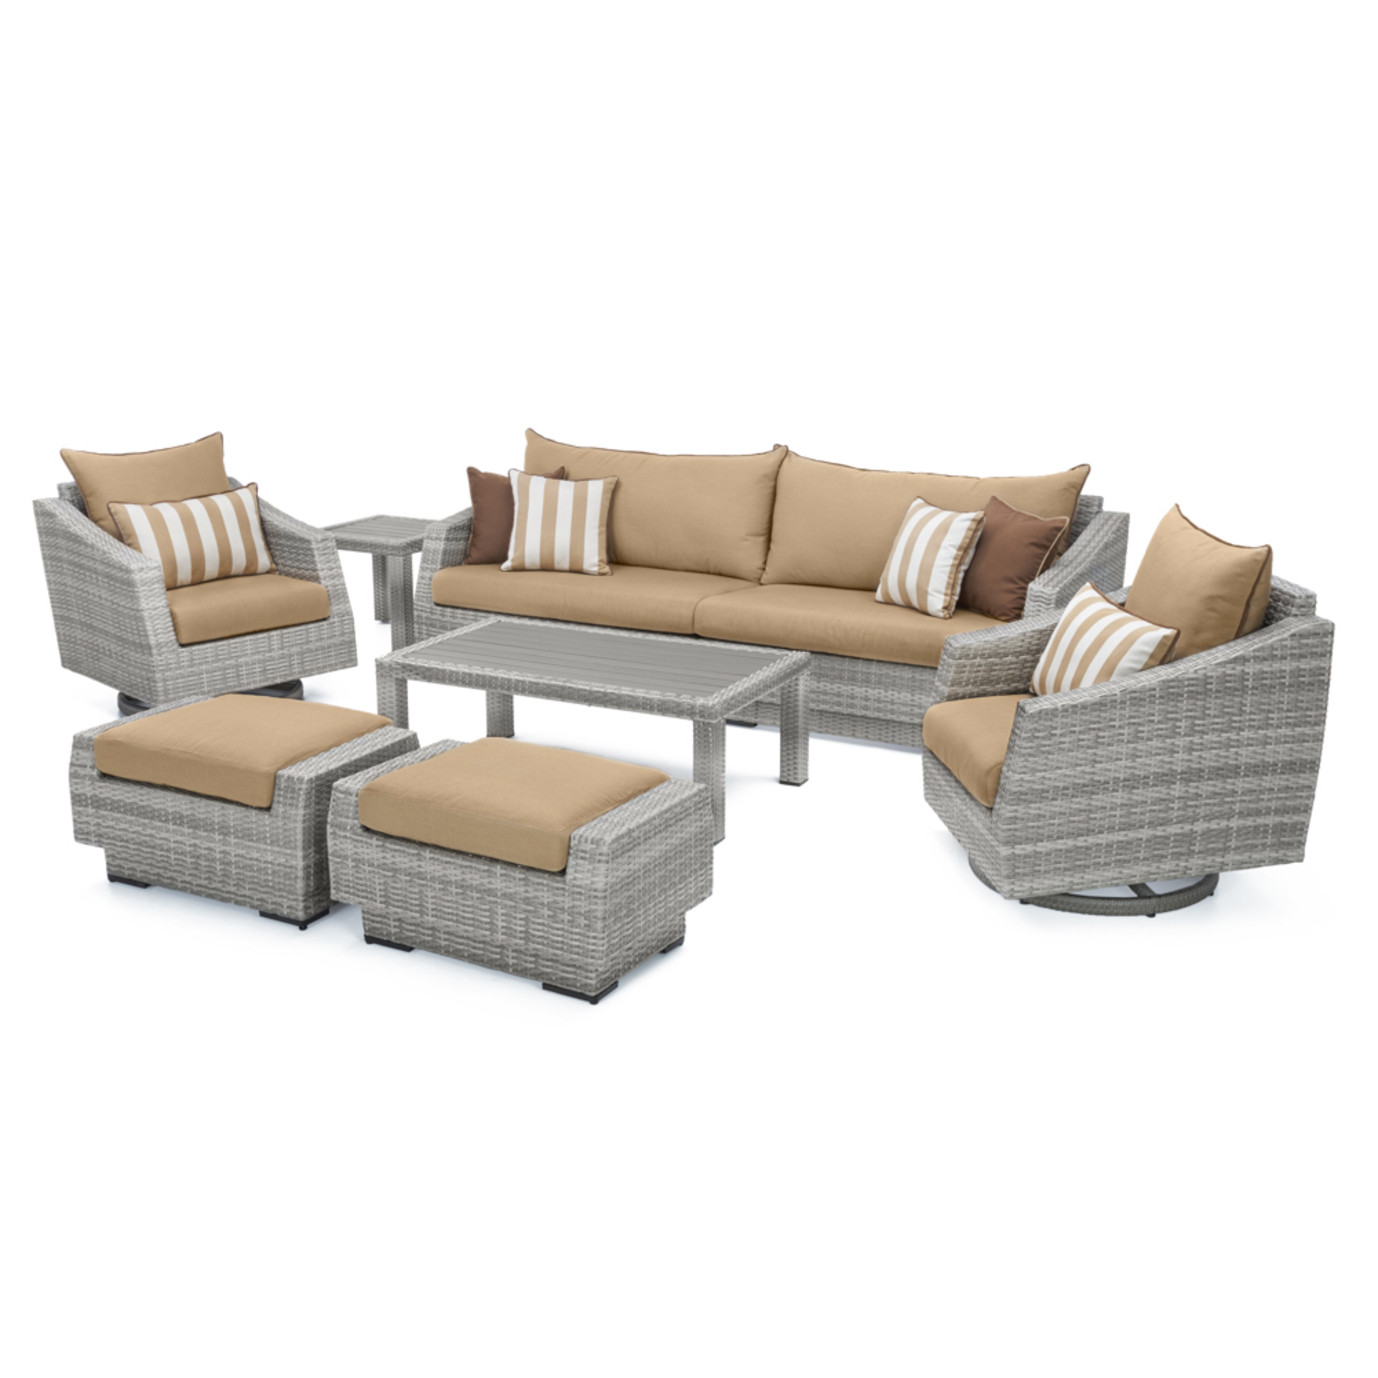 Cannes™ Deluxe 8 Piece Sofa & Club Chair Set - Maxim Beige